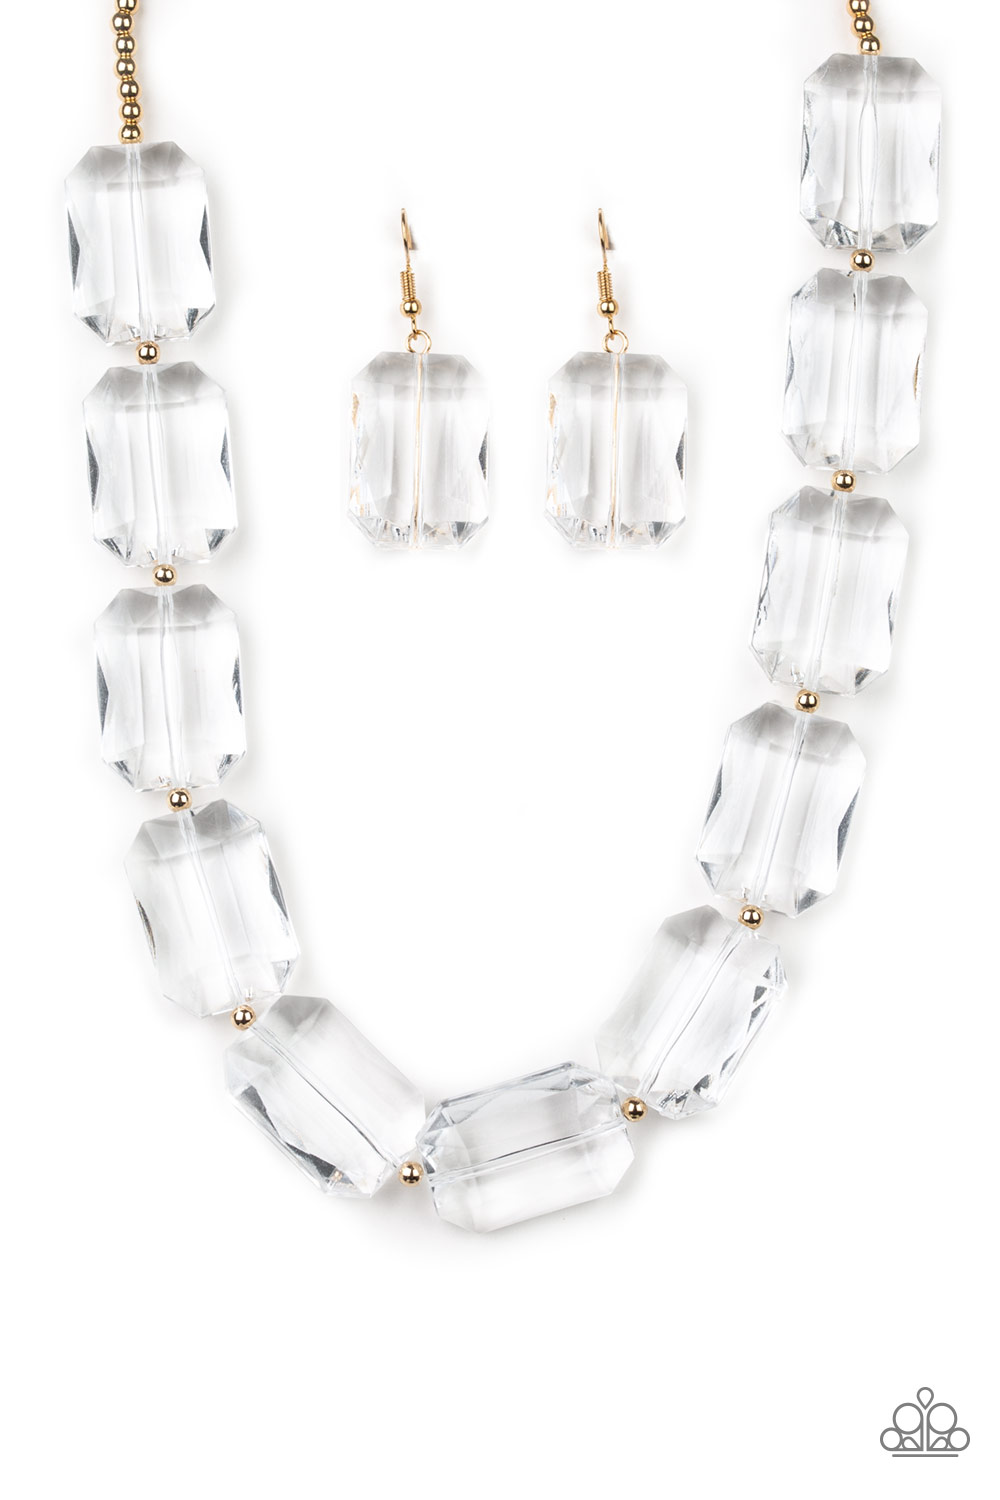 The ICE President - Gold Necklace and Earrings by Paparazzi $5 my-bling.com